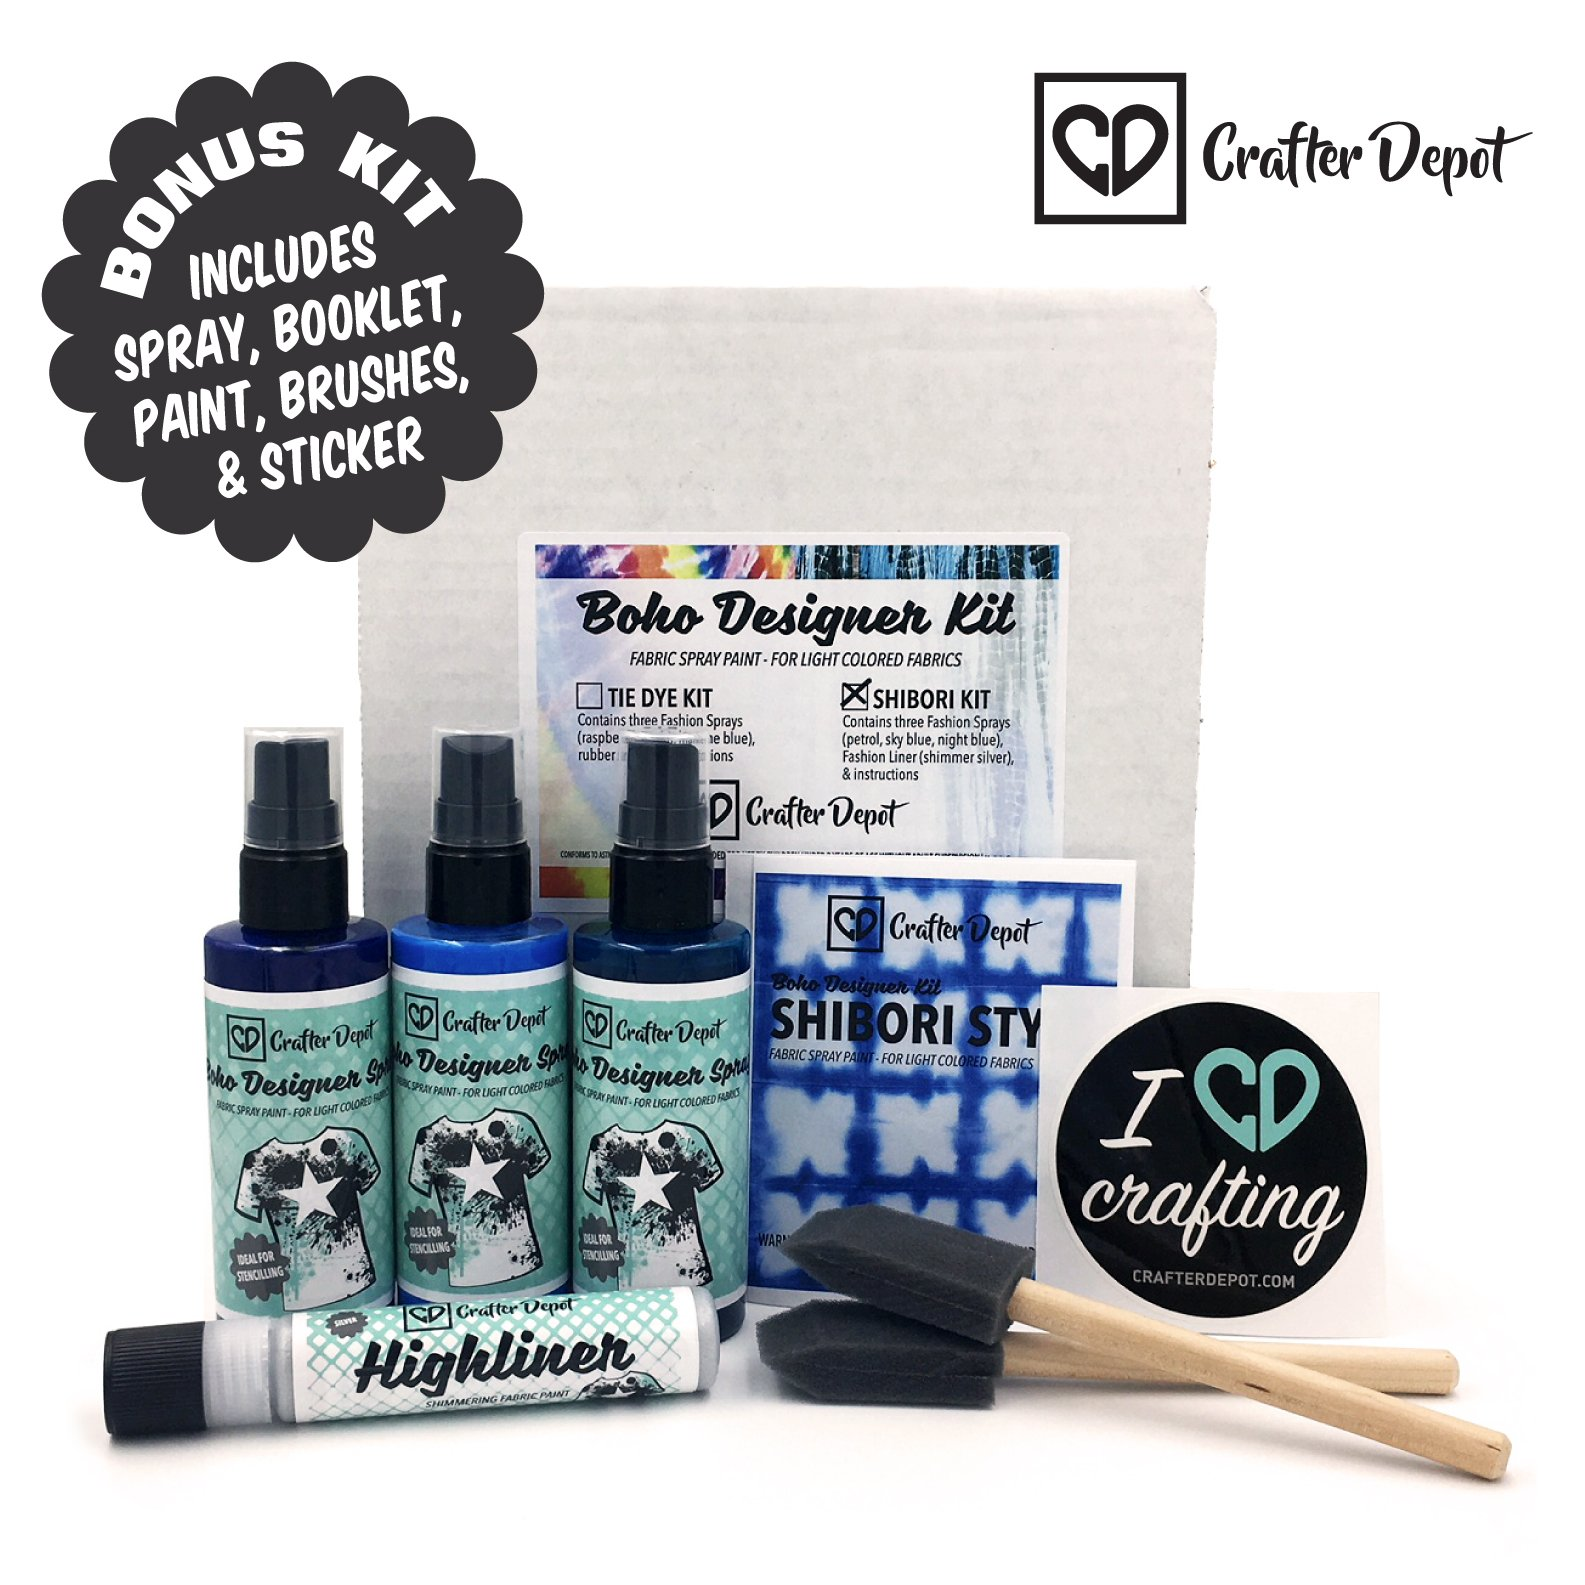 Tie Dye Kit Shibori Includes three different shades of Blue. Night Blue, Sky Blue and Petrol (3) 100 ML Bottles by Crafter Depot Rubber Bands Included